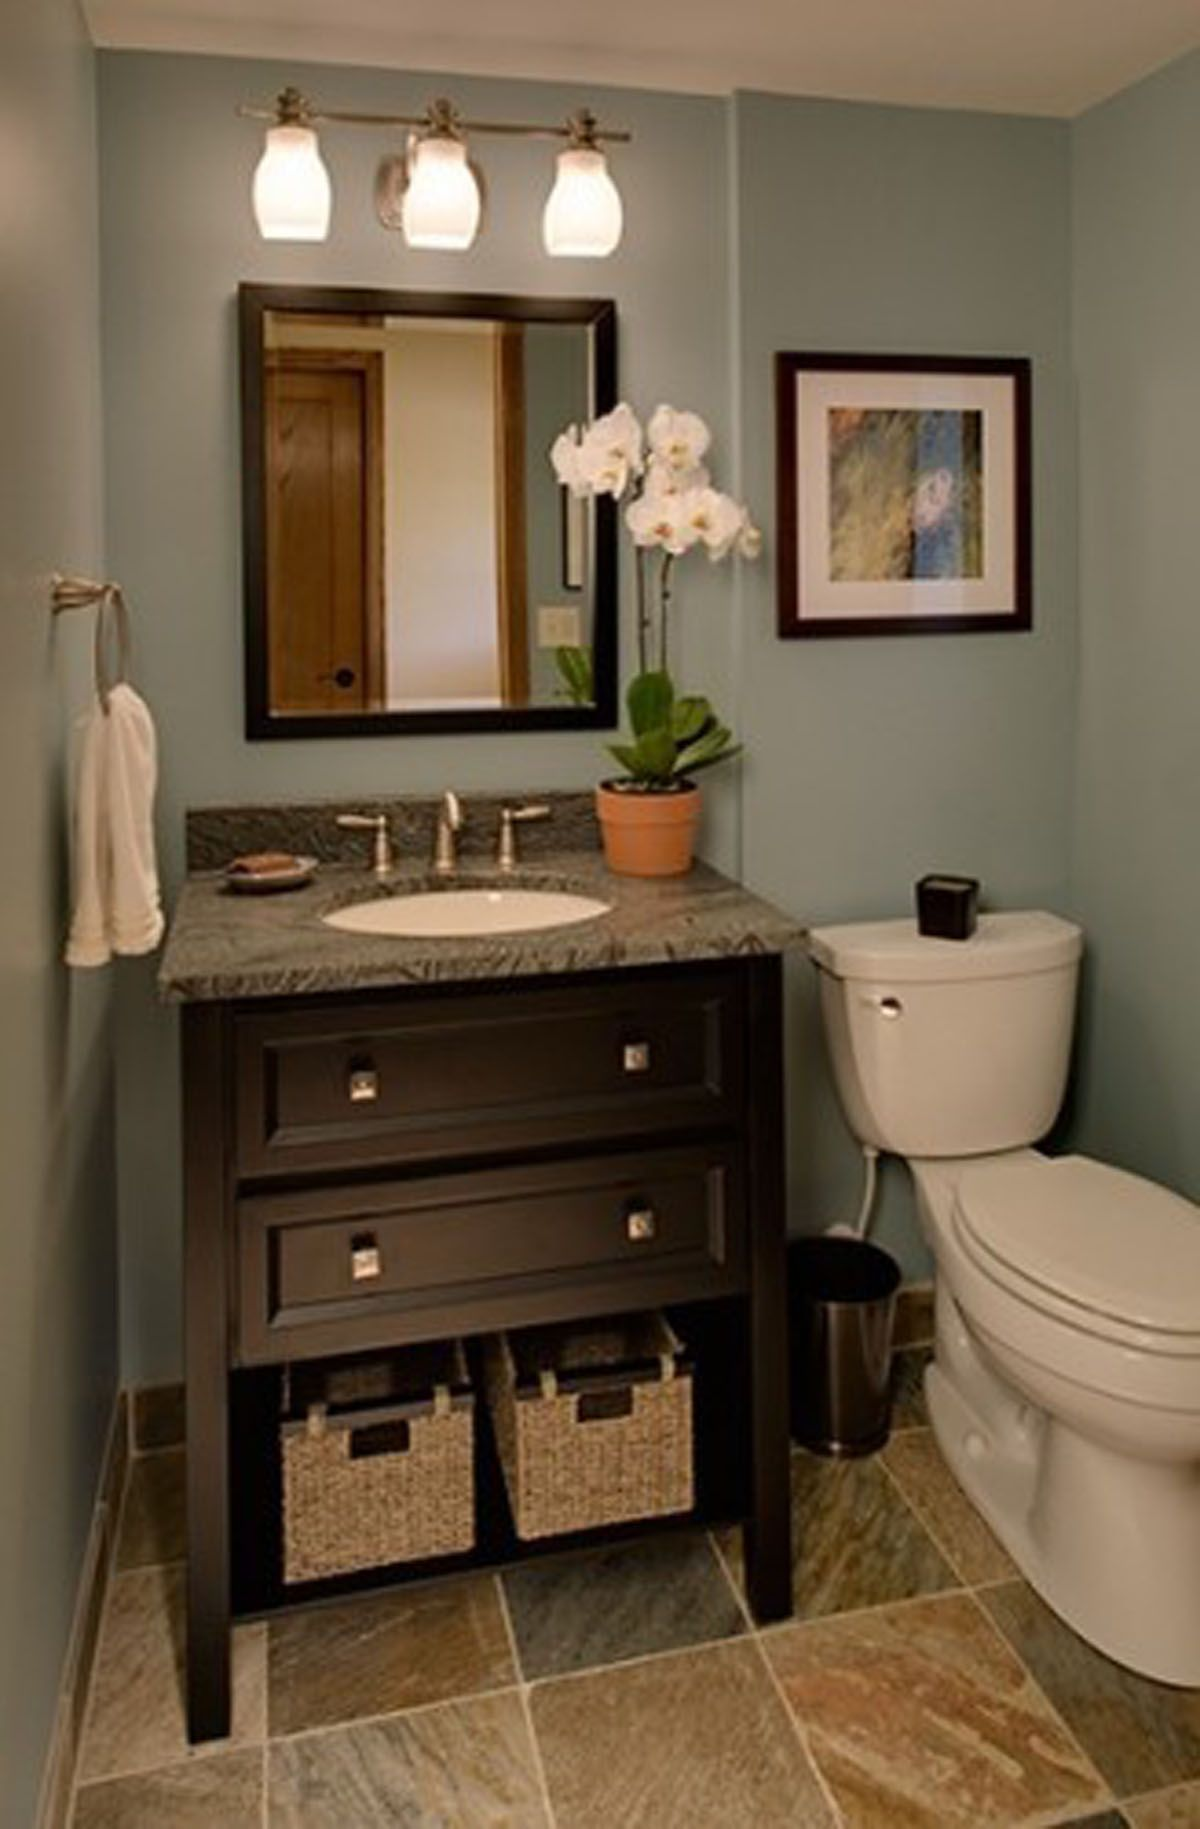 Half Bathroom Decorating Ideas Design Ideas Decors Half Bathroom Decorating Ideas Design Ideas Decors Bathrooms